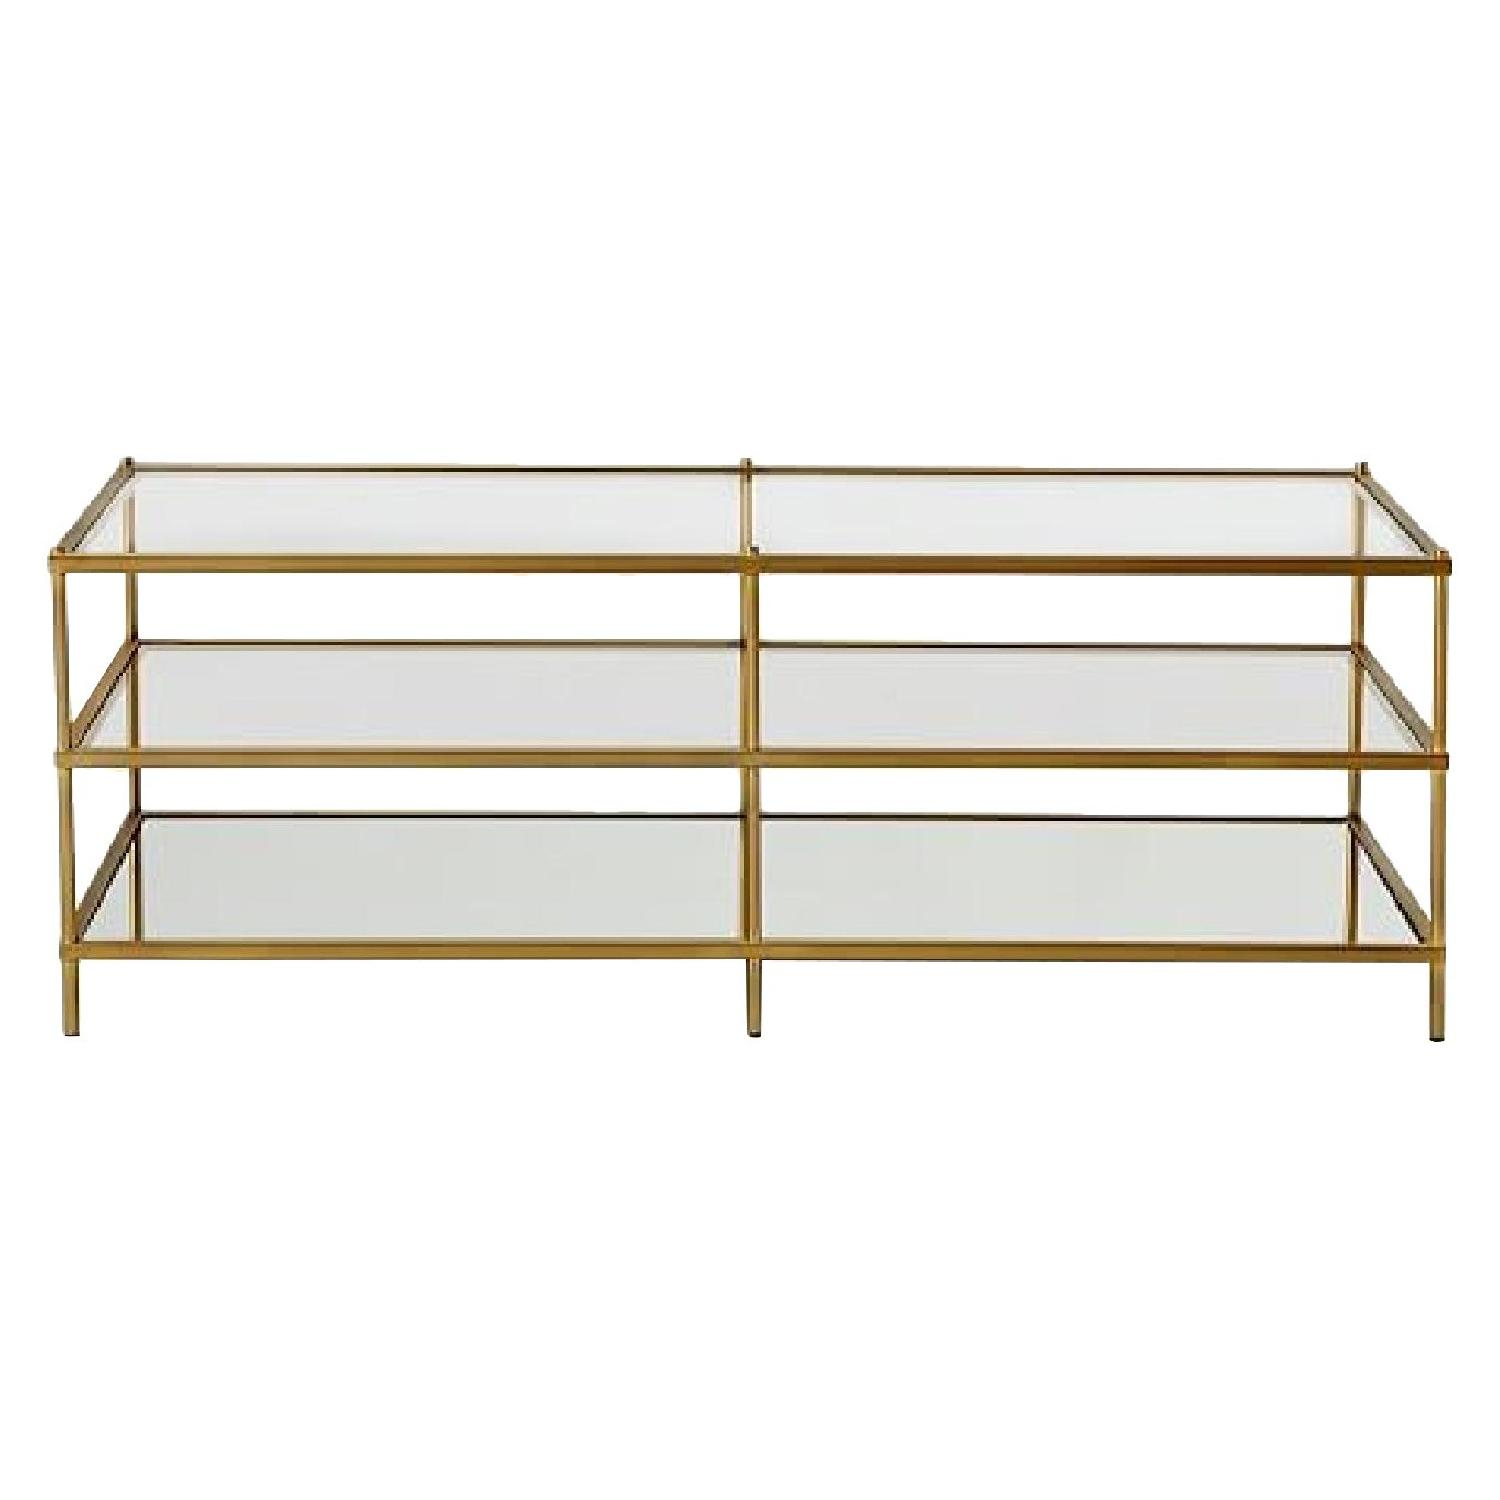 West Elm 3 Tier Glass/Gold Coffee Table